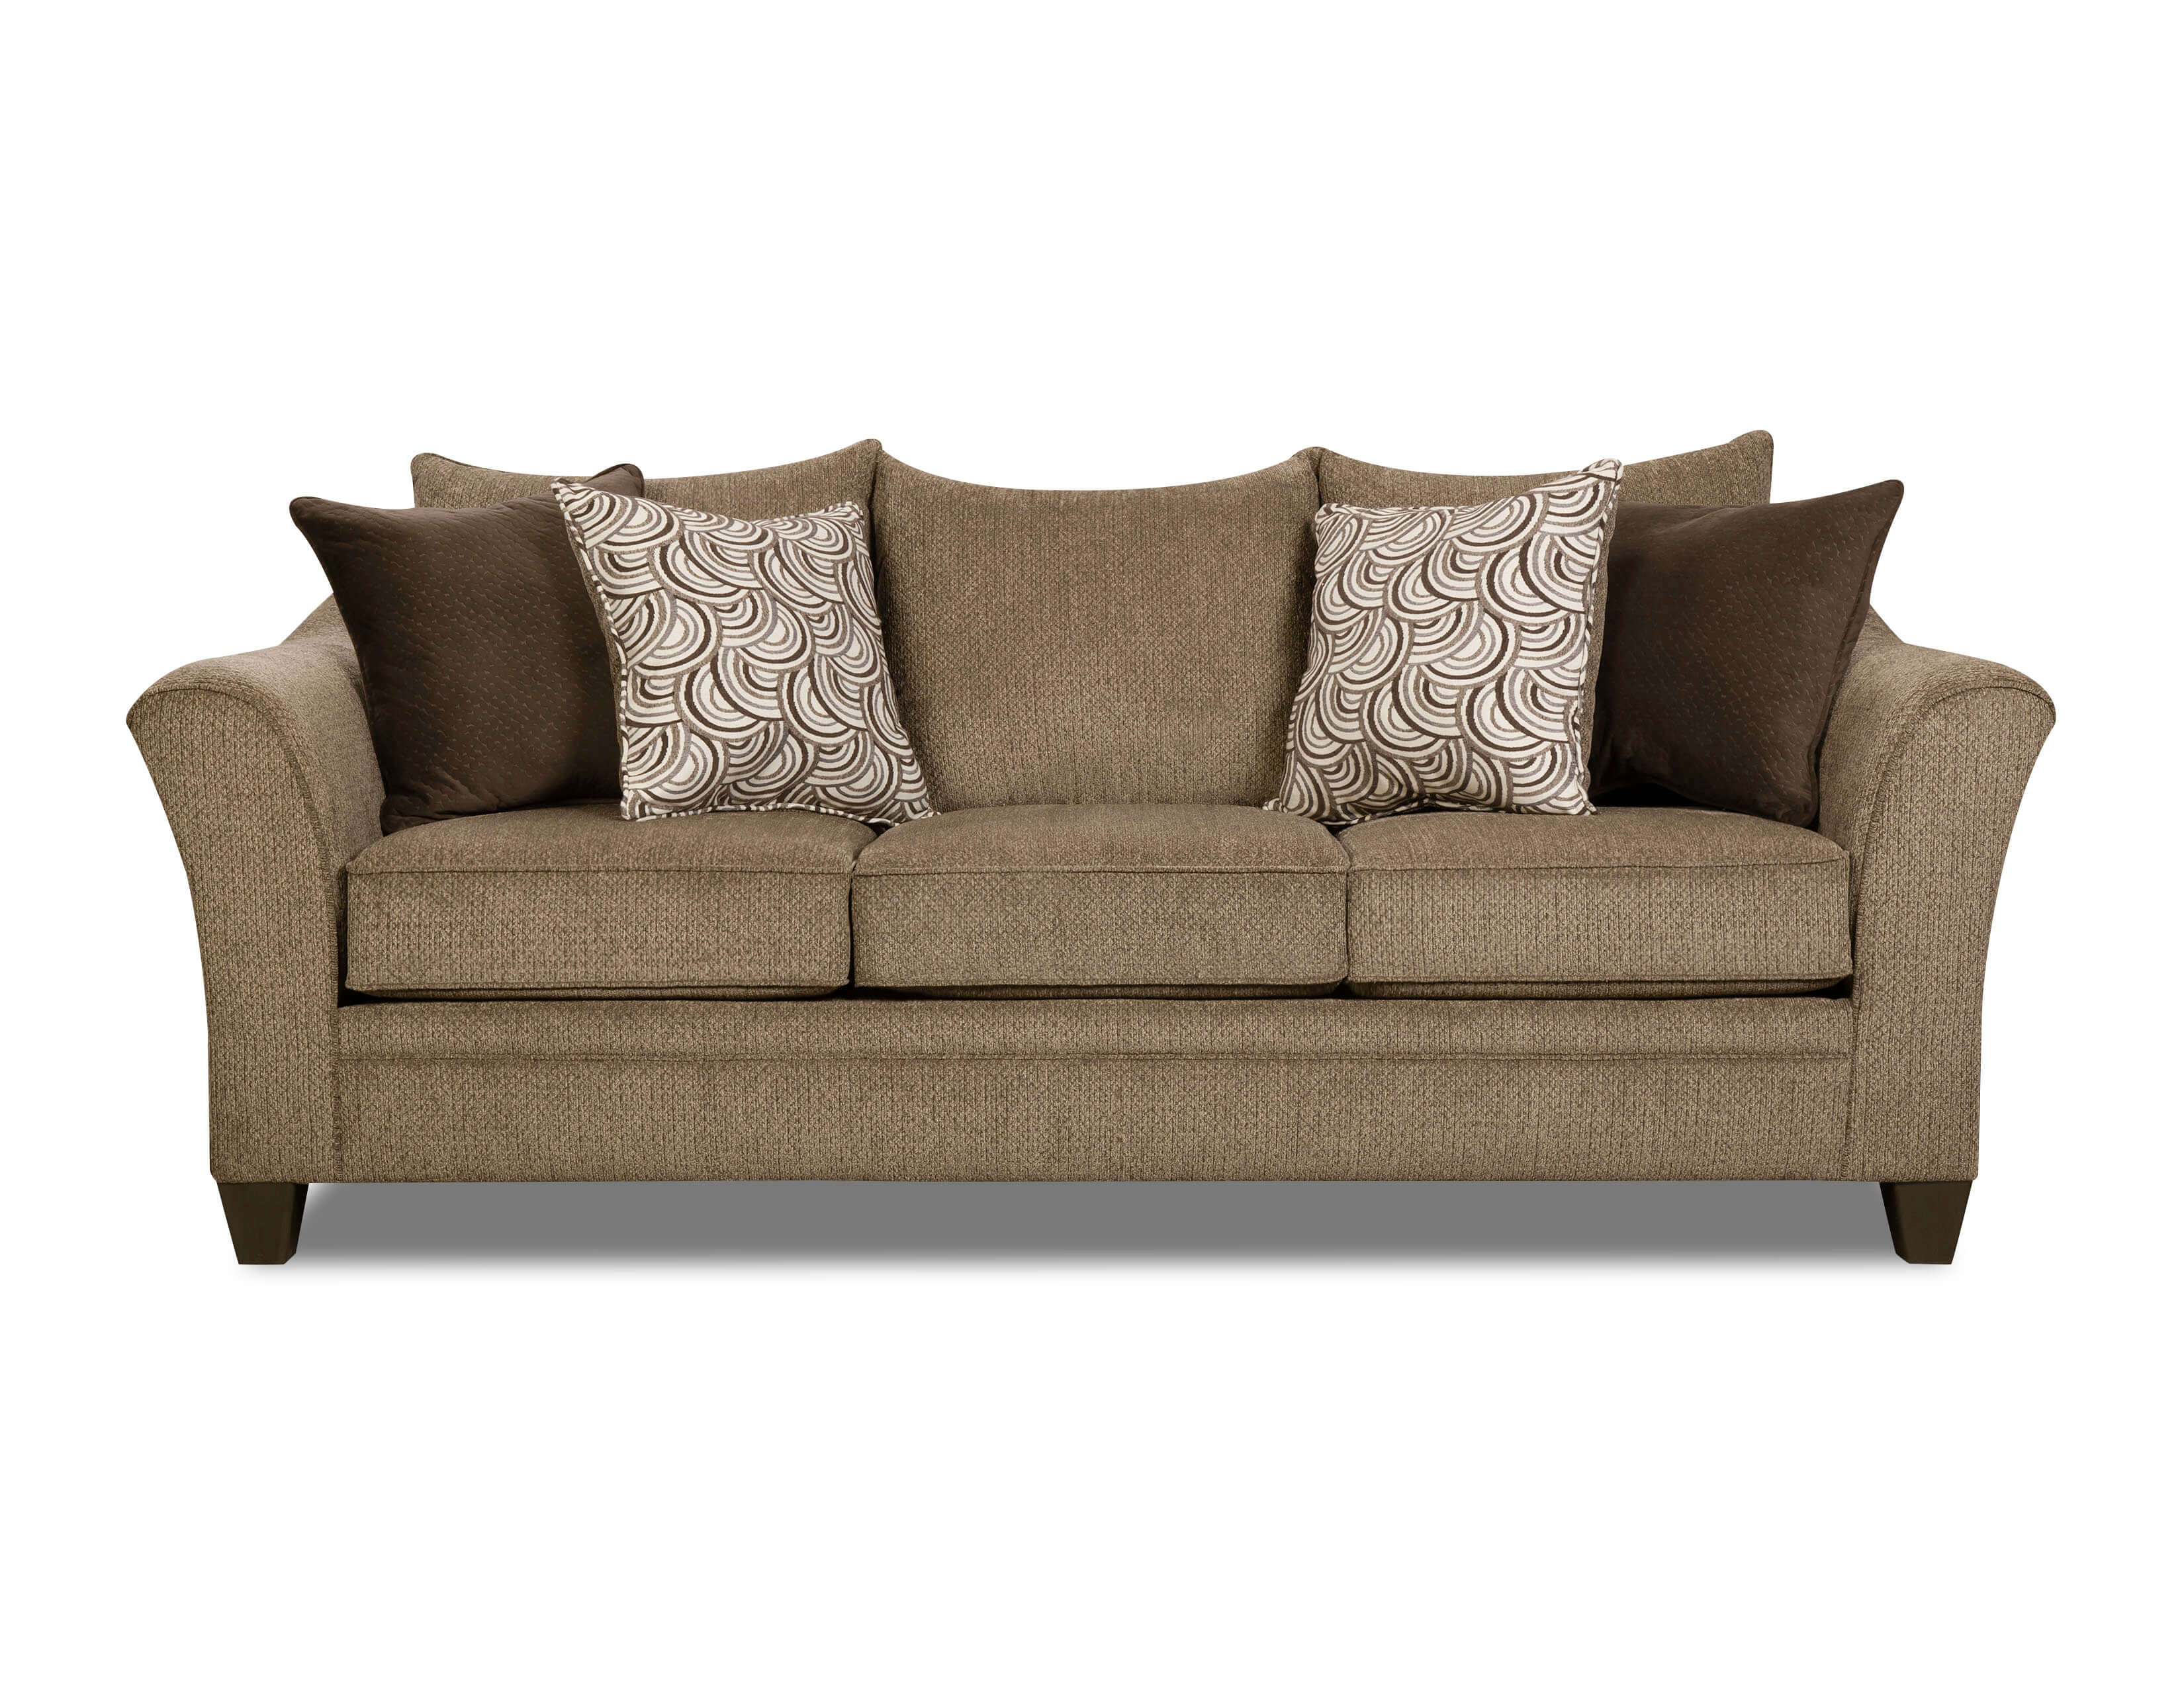 lane home furnishings leather sofa and loveseat from the bowden collection english company crompton simmons alcott hill upholstery beasley